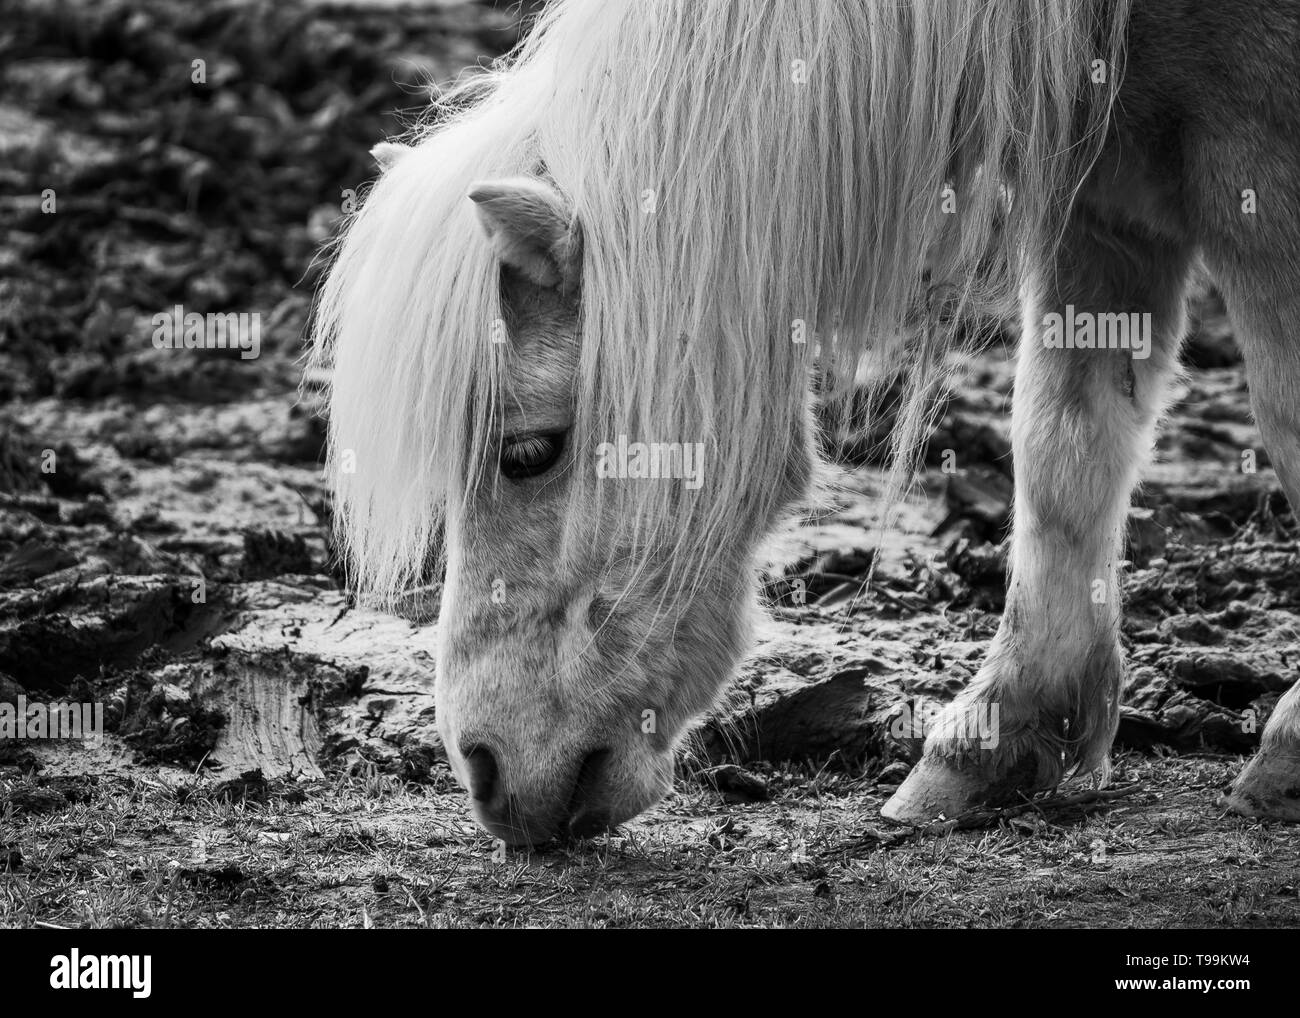 Portrait of a horse eating grass in black and white. Stock Photo